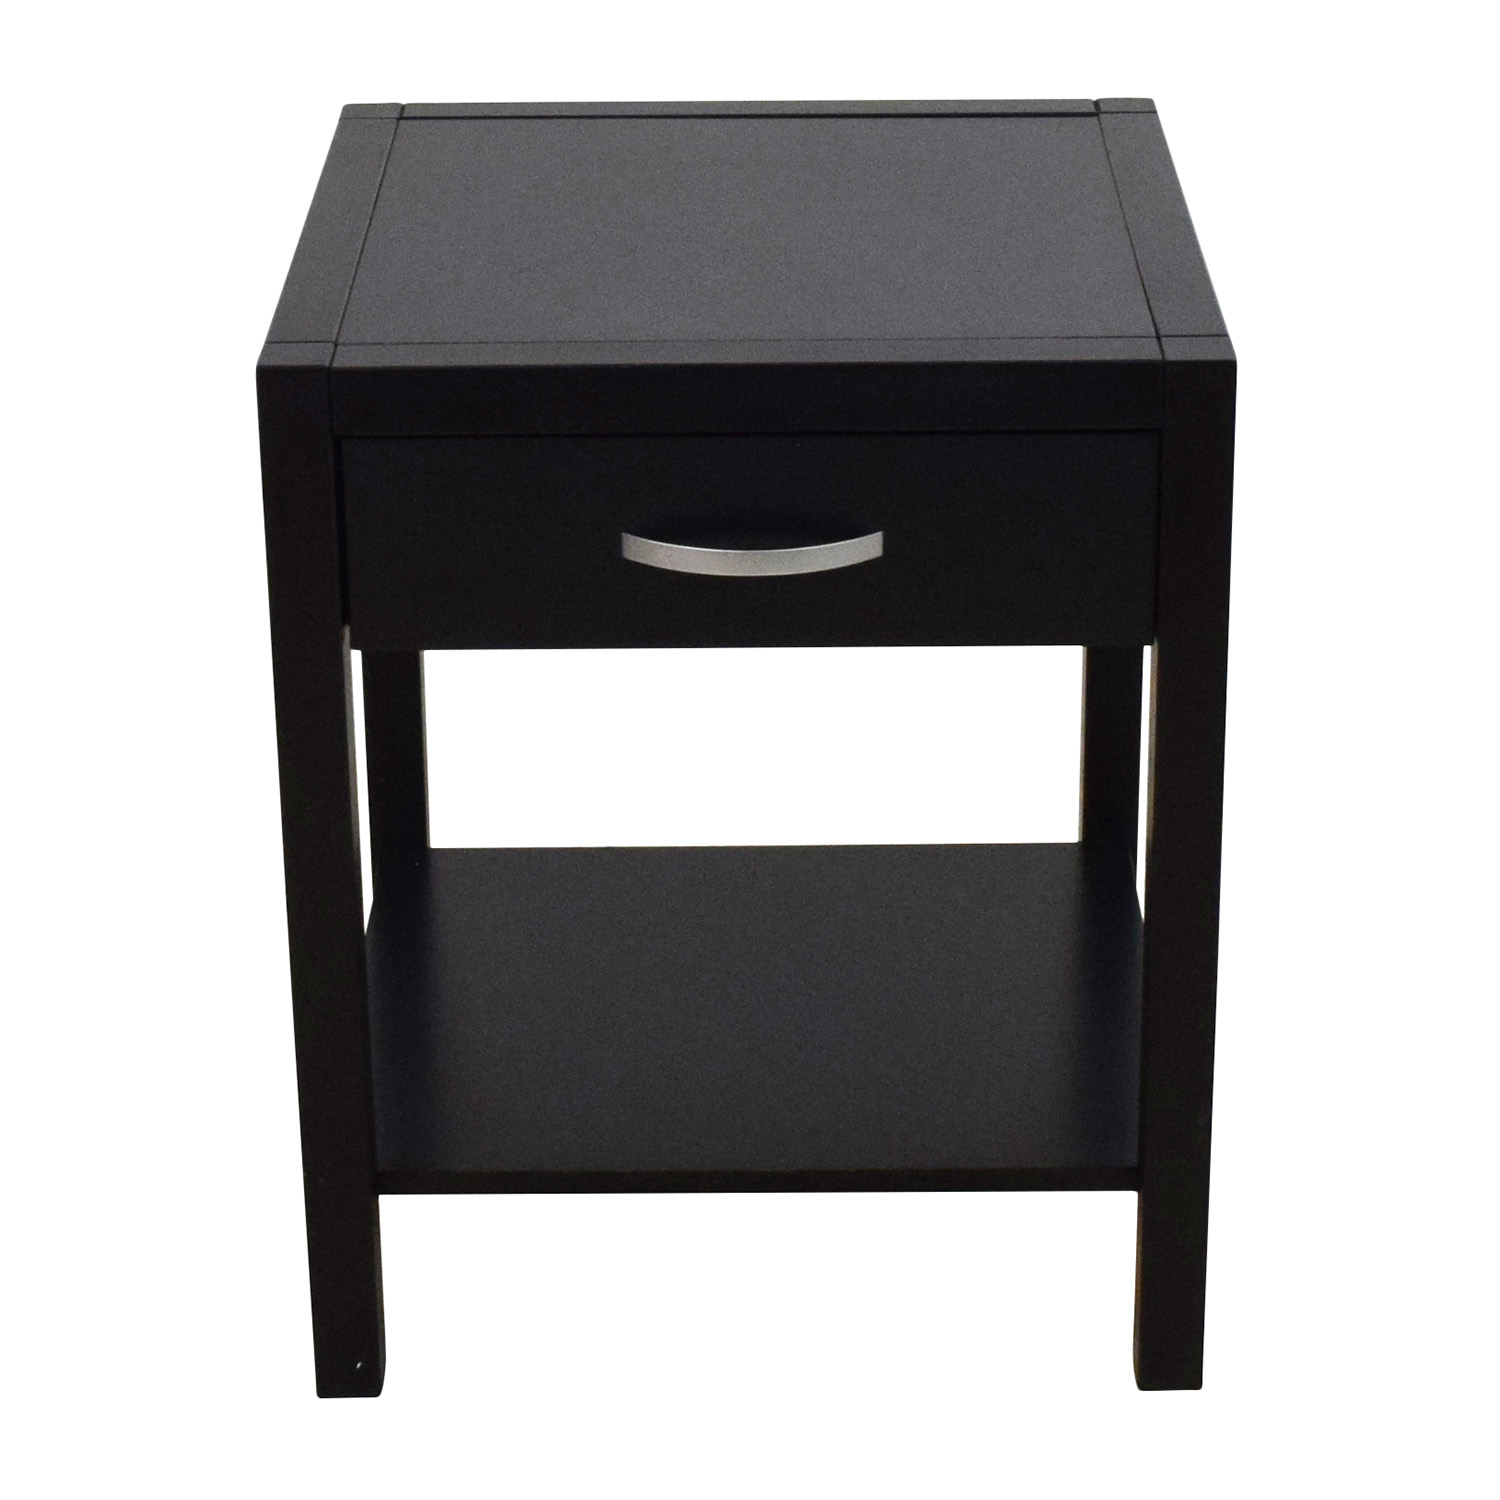 82 Off Solid Basic Solid Basic Black Nightstand With One Drawer Tables